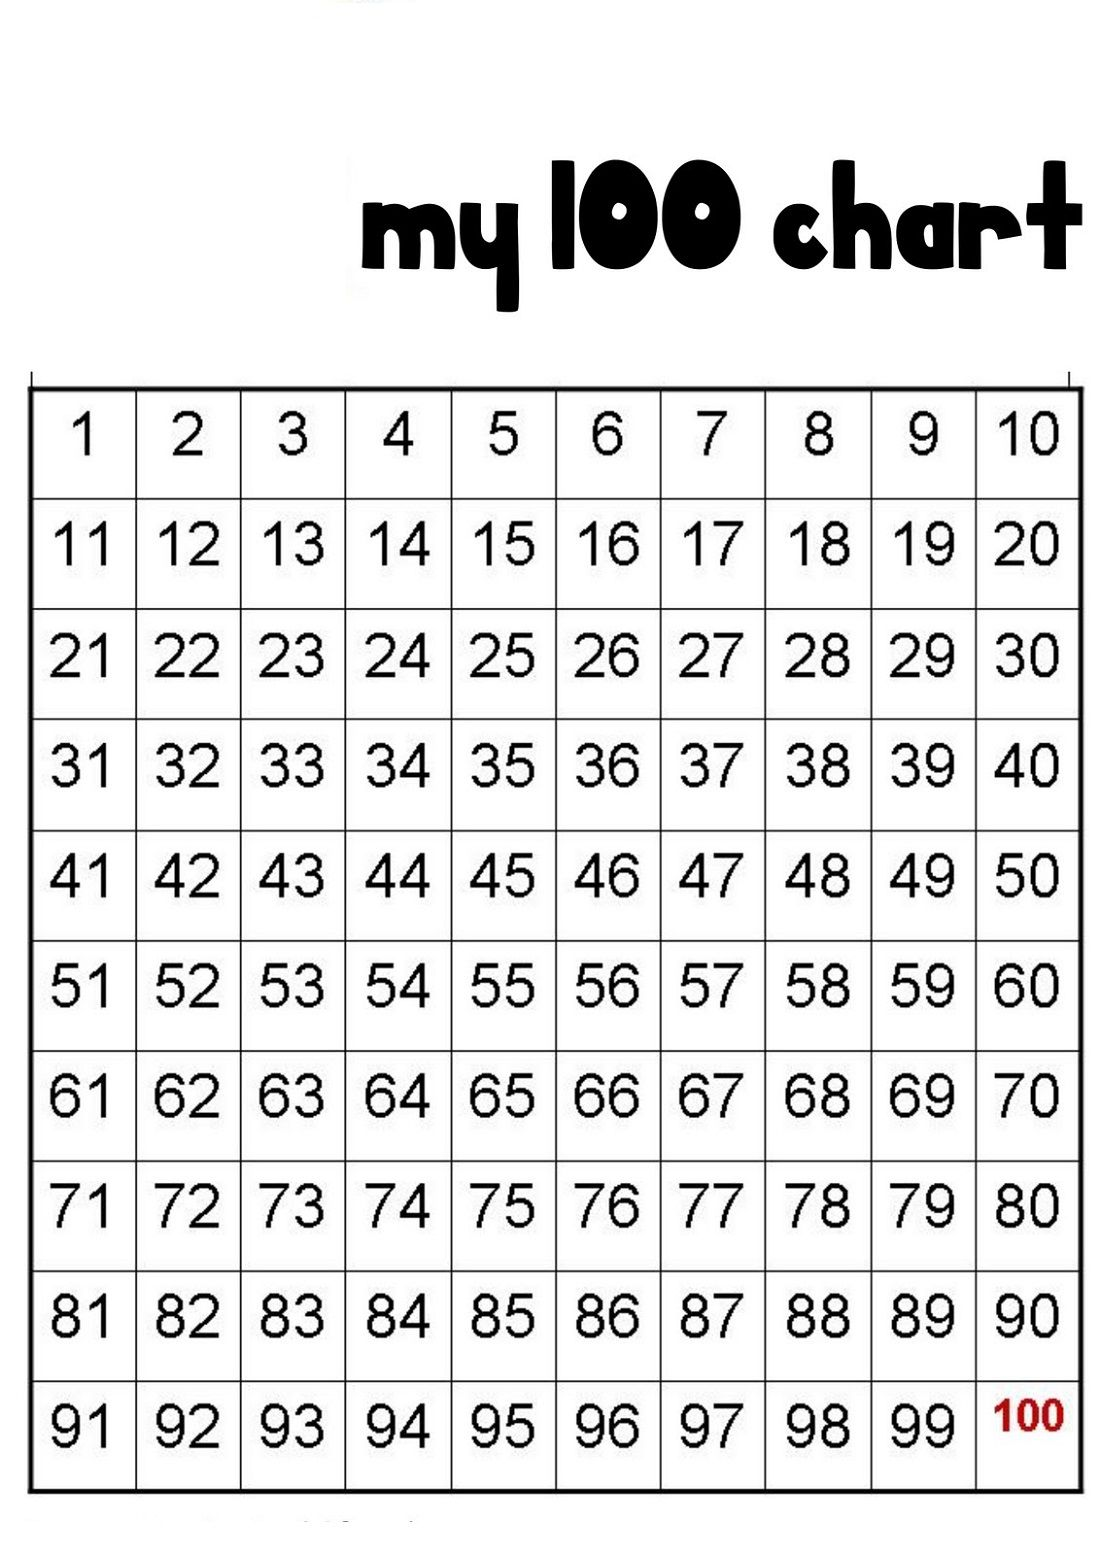 1 100 Number Chart Printable With Images